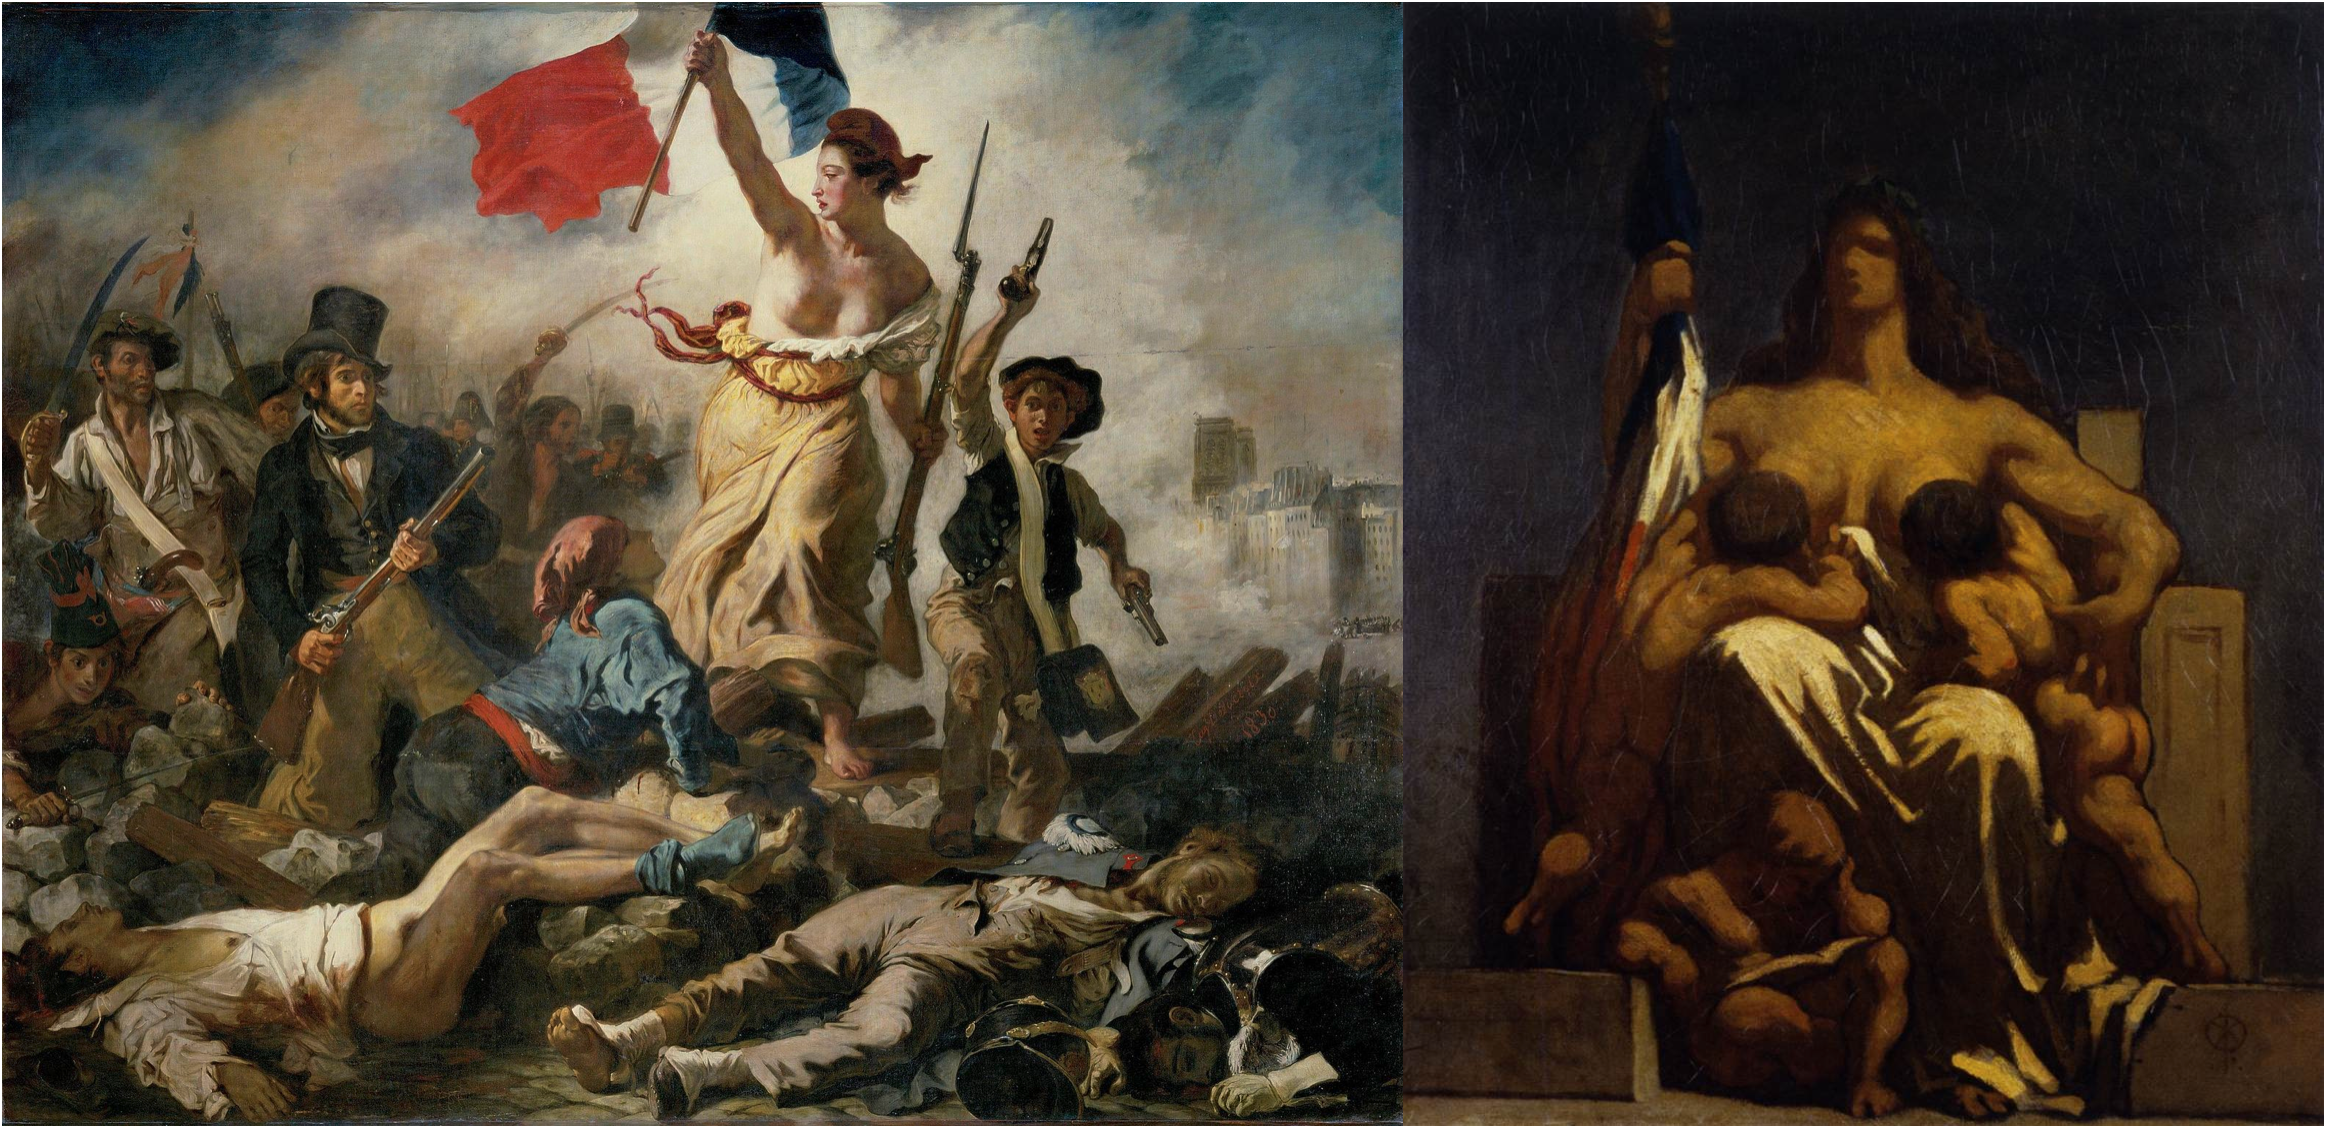 Painting of a woman holding a French flag leading the people on the right, on the left painting of a woman sitting on a throne holding a French flag and breastfeeding two children.